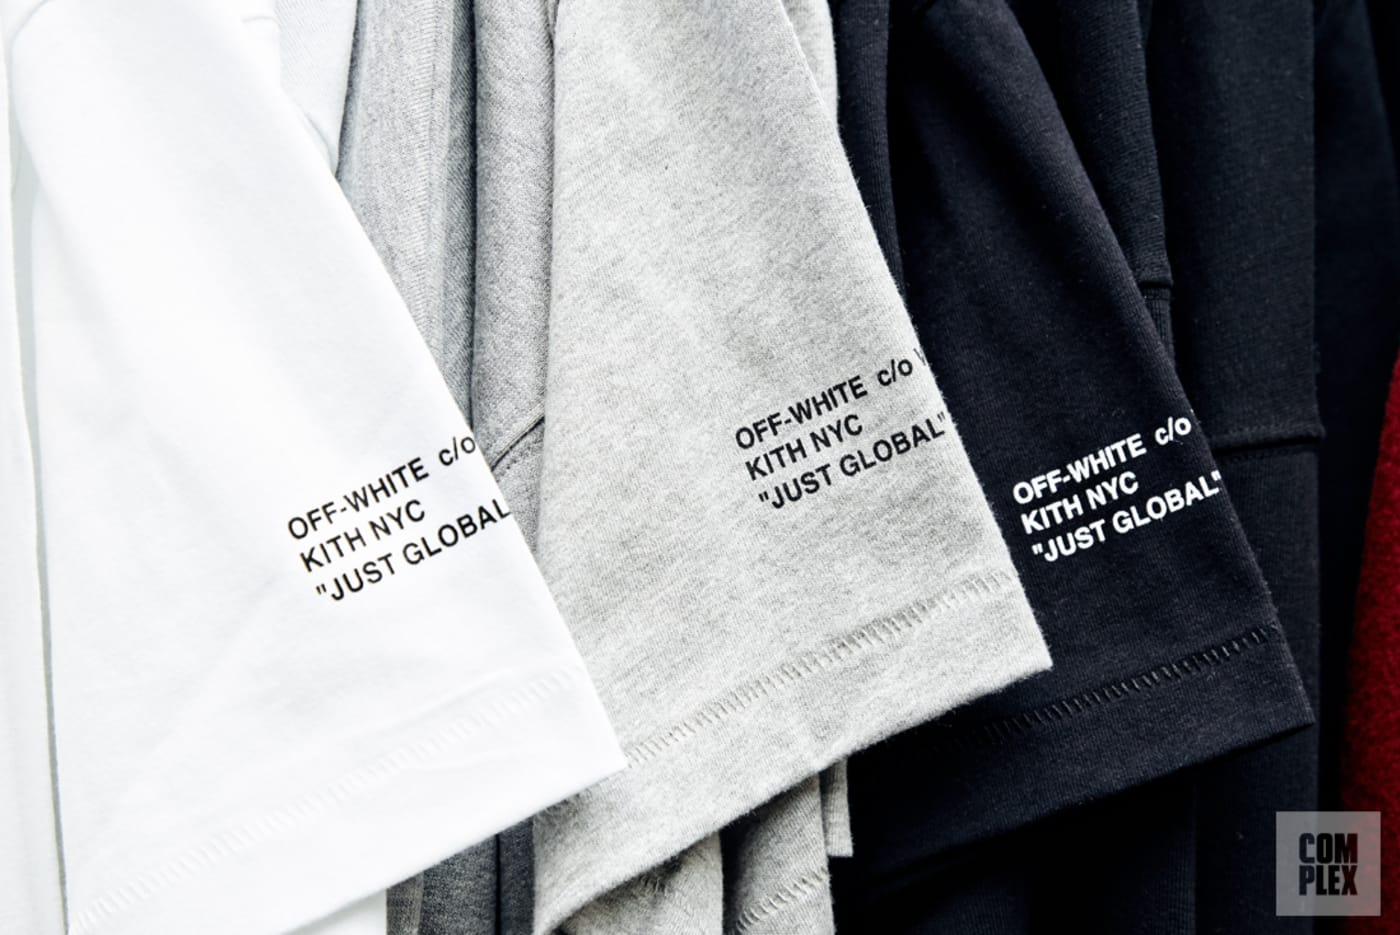 Kith's upcoming Off White collaboration.